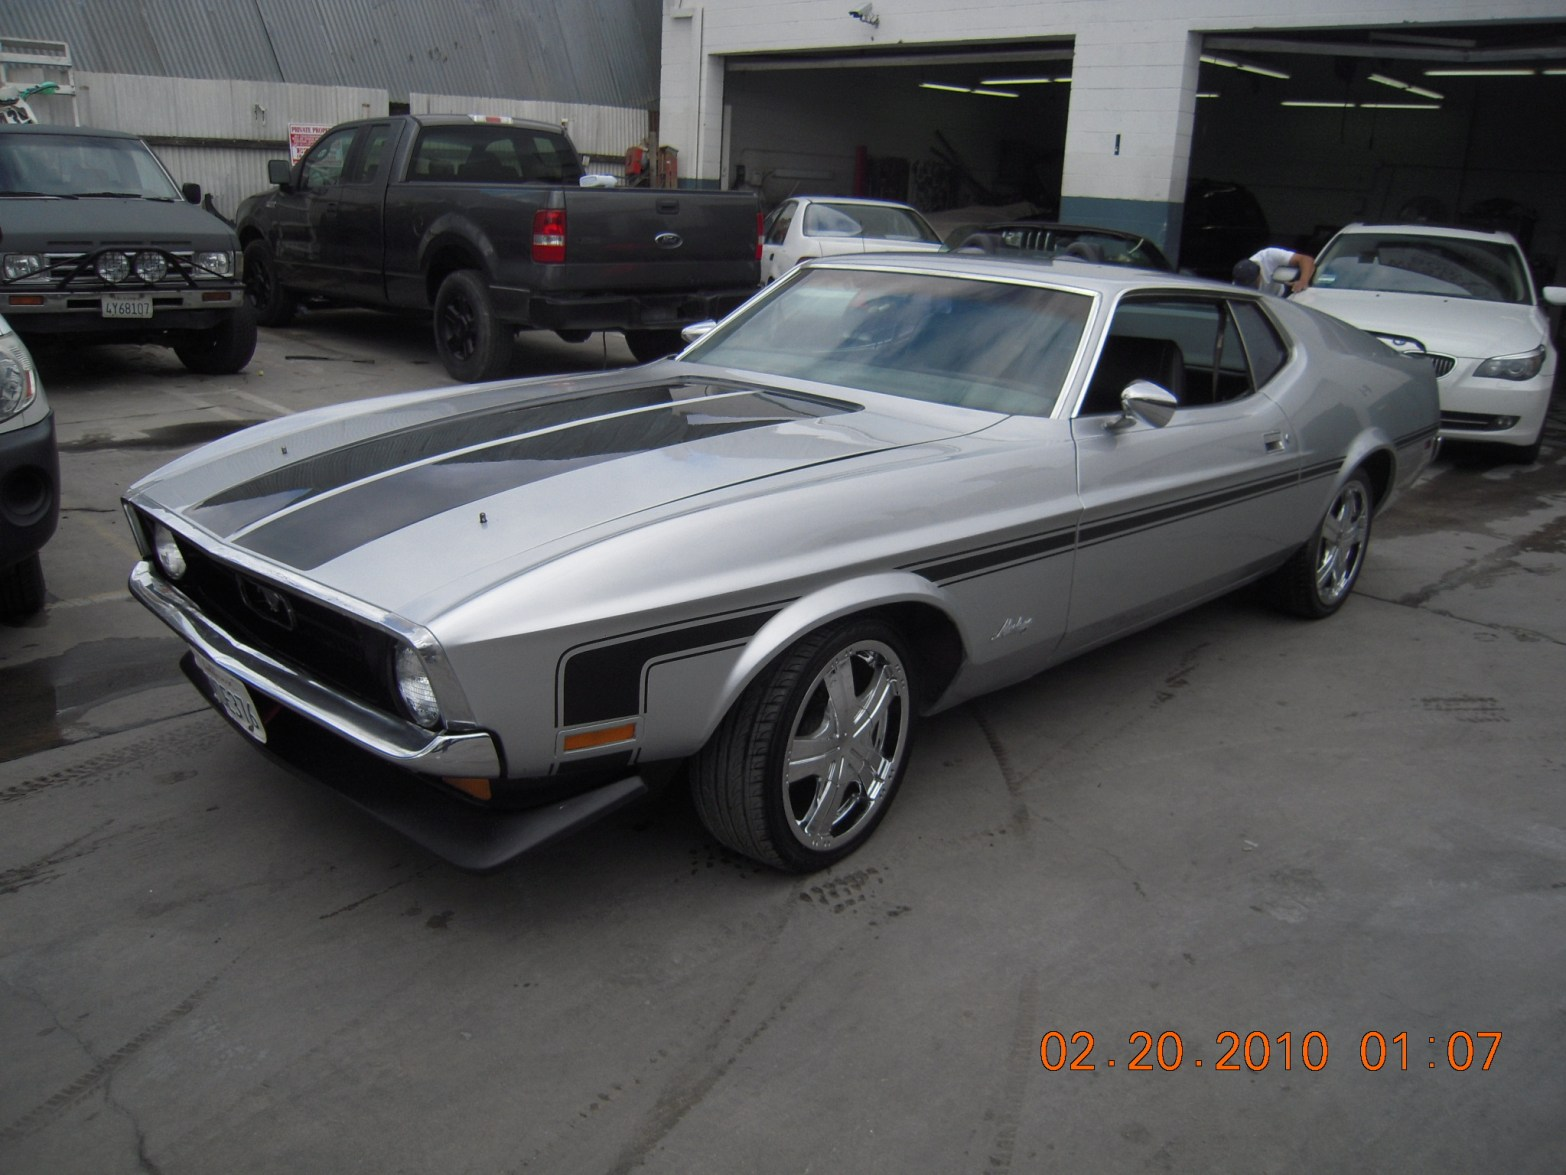 west-coast-body-and-paint-1971-mustang-mach-1-gray-37